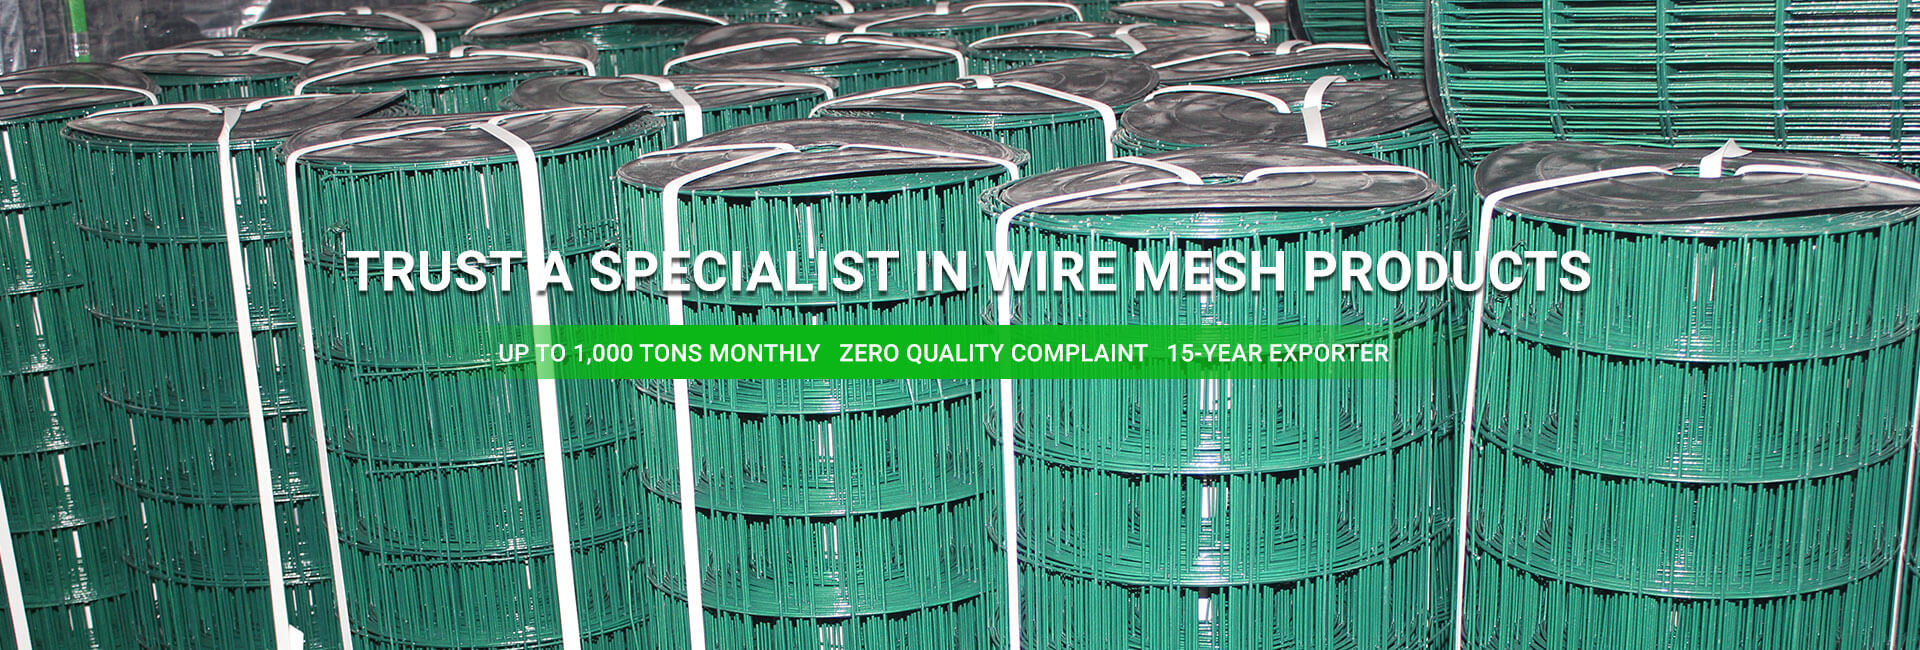 TRUST A SPECIALIST IN WIRE MESH PRODUCTS